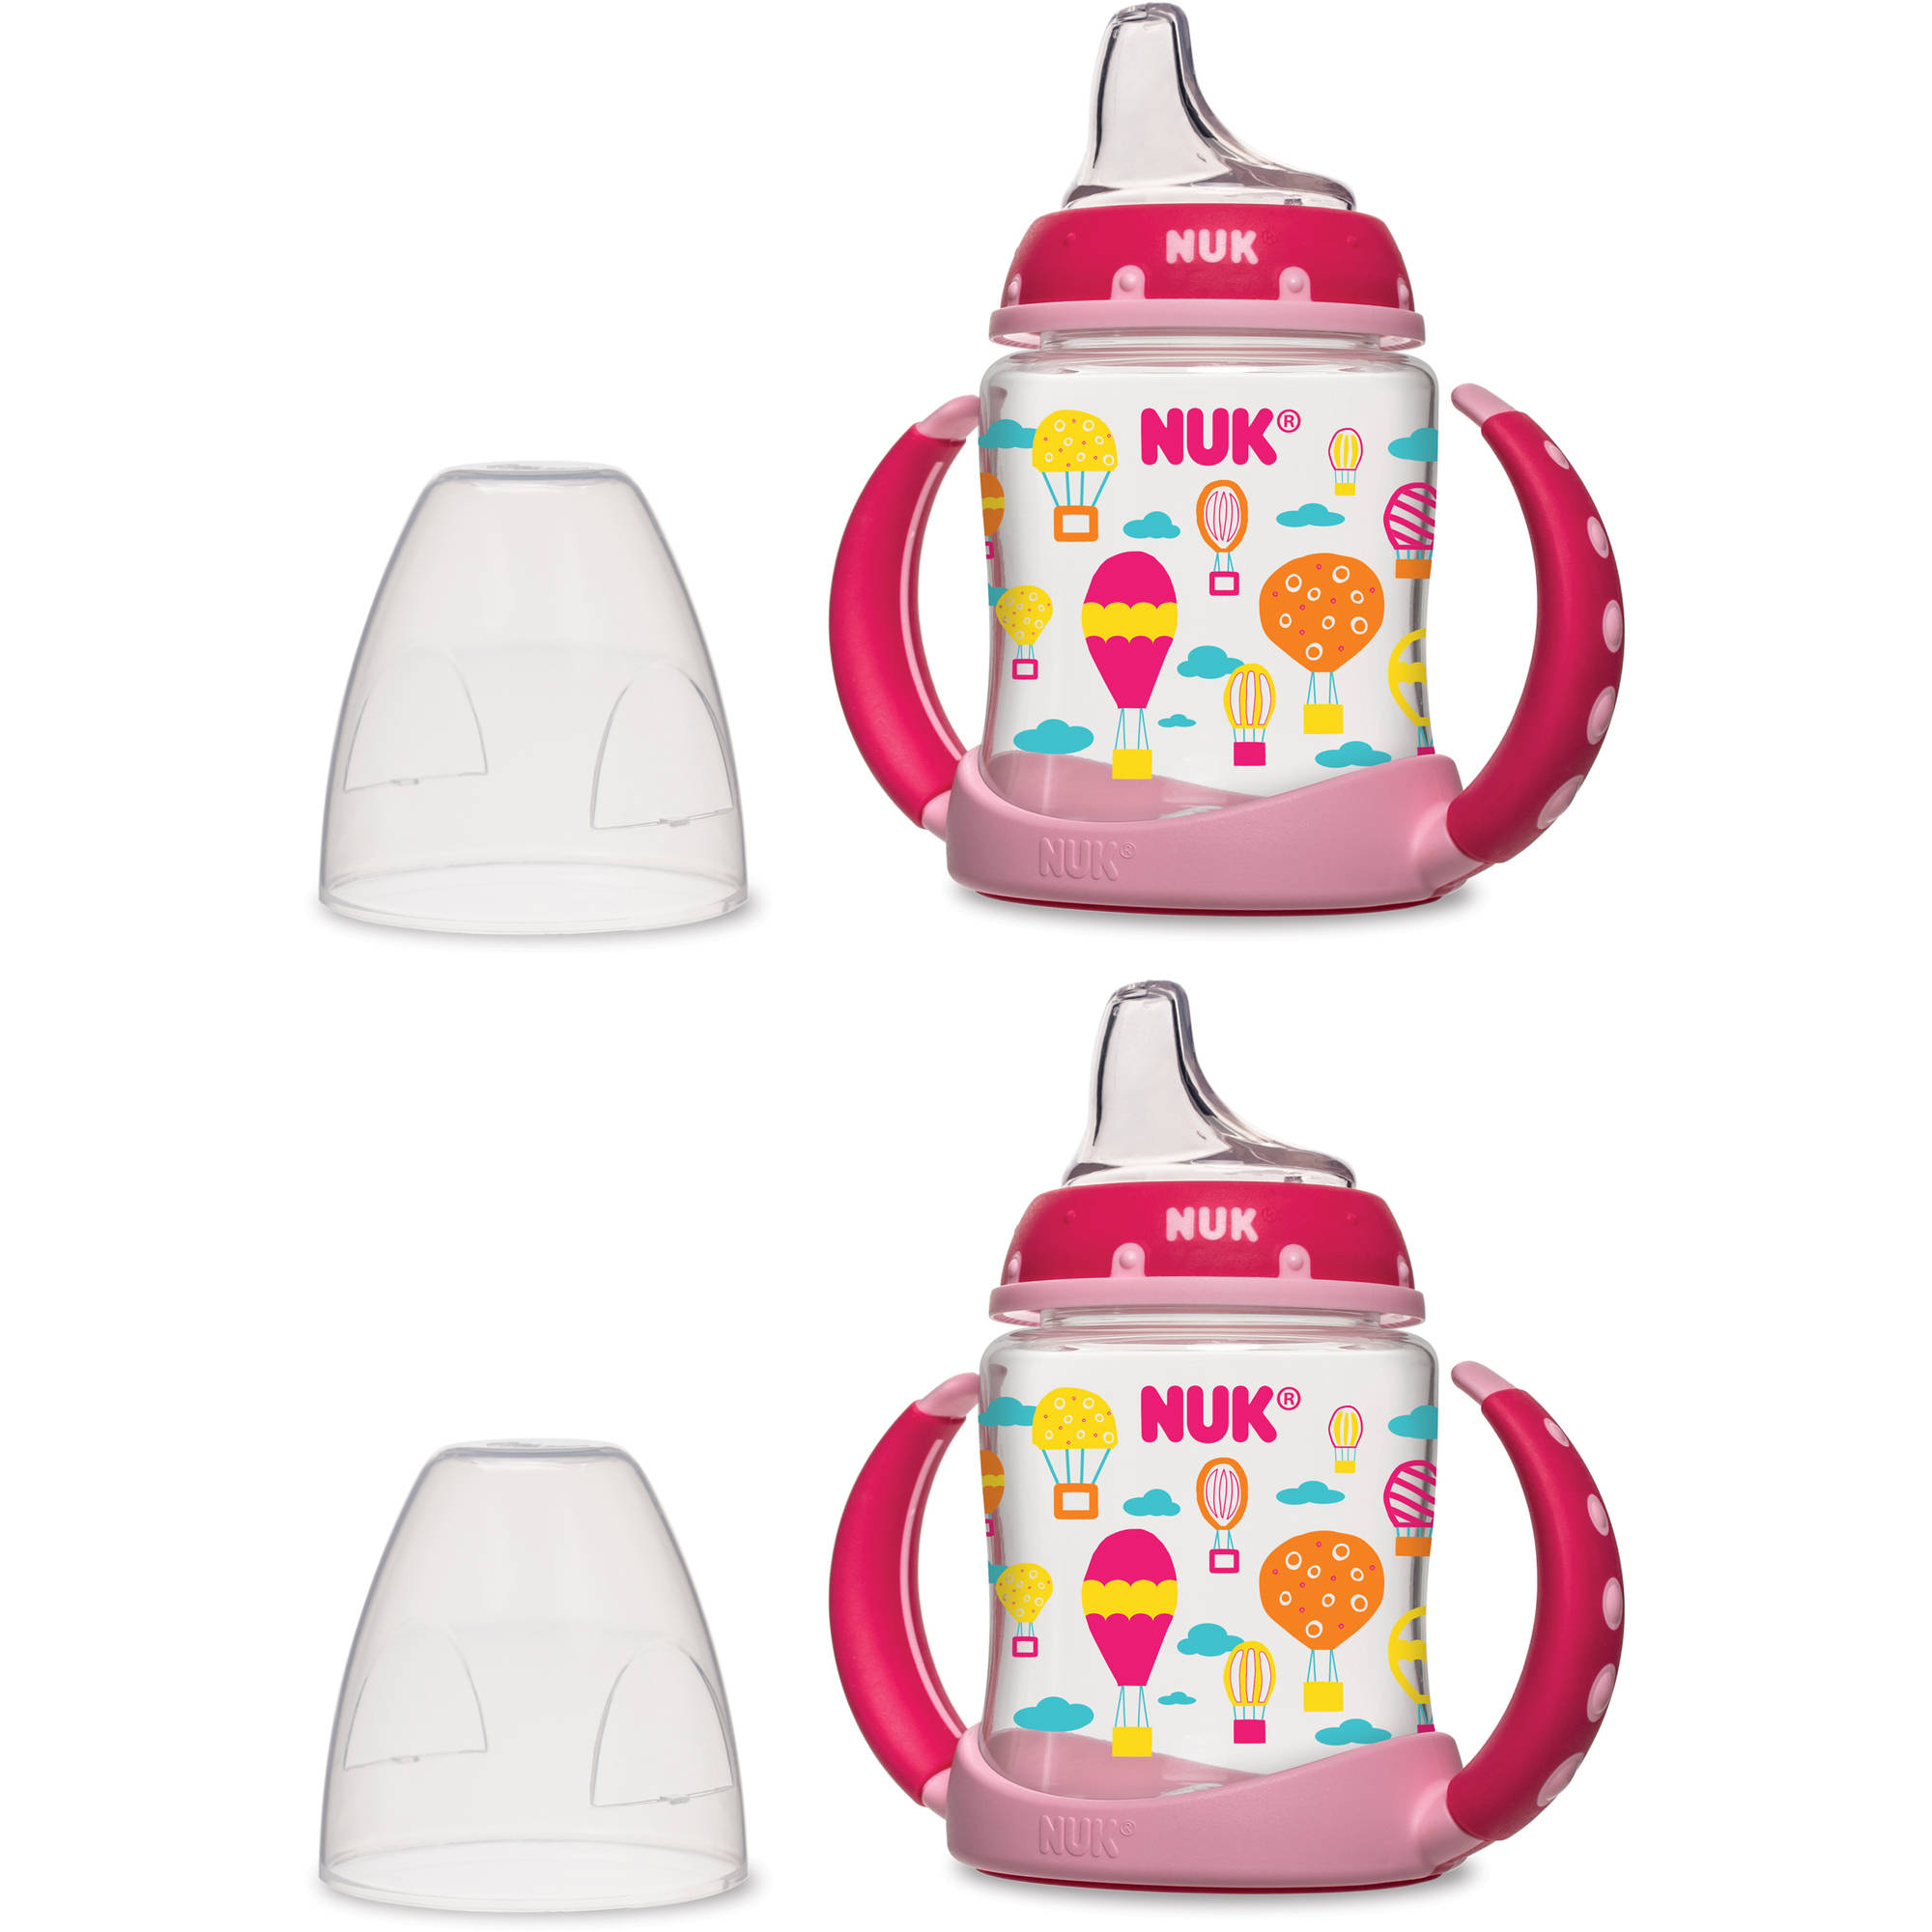 NUK 5-oz Learner Cups, Silicone Spout, Set of 2, Girl Design, BPA-Free by Nuk